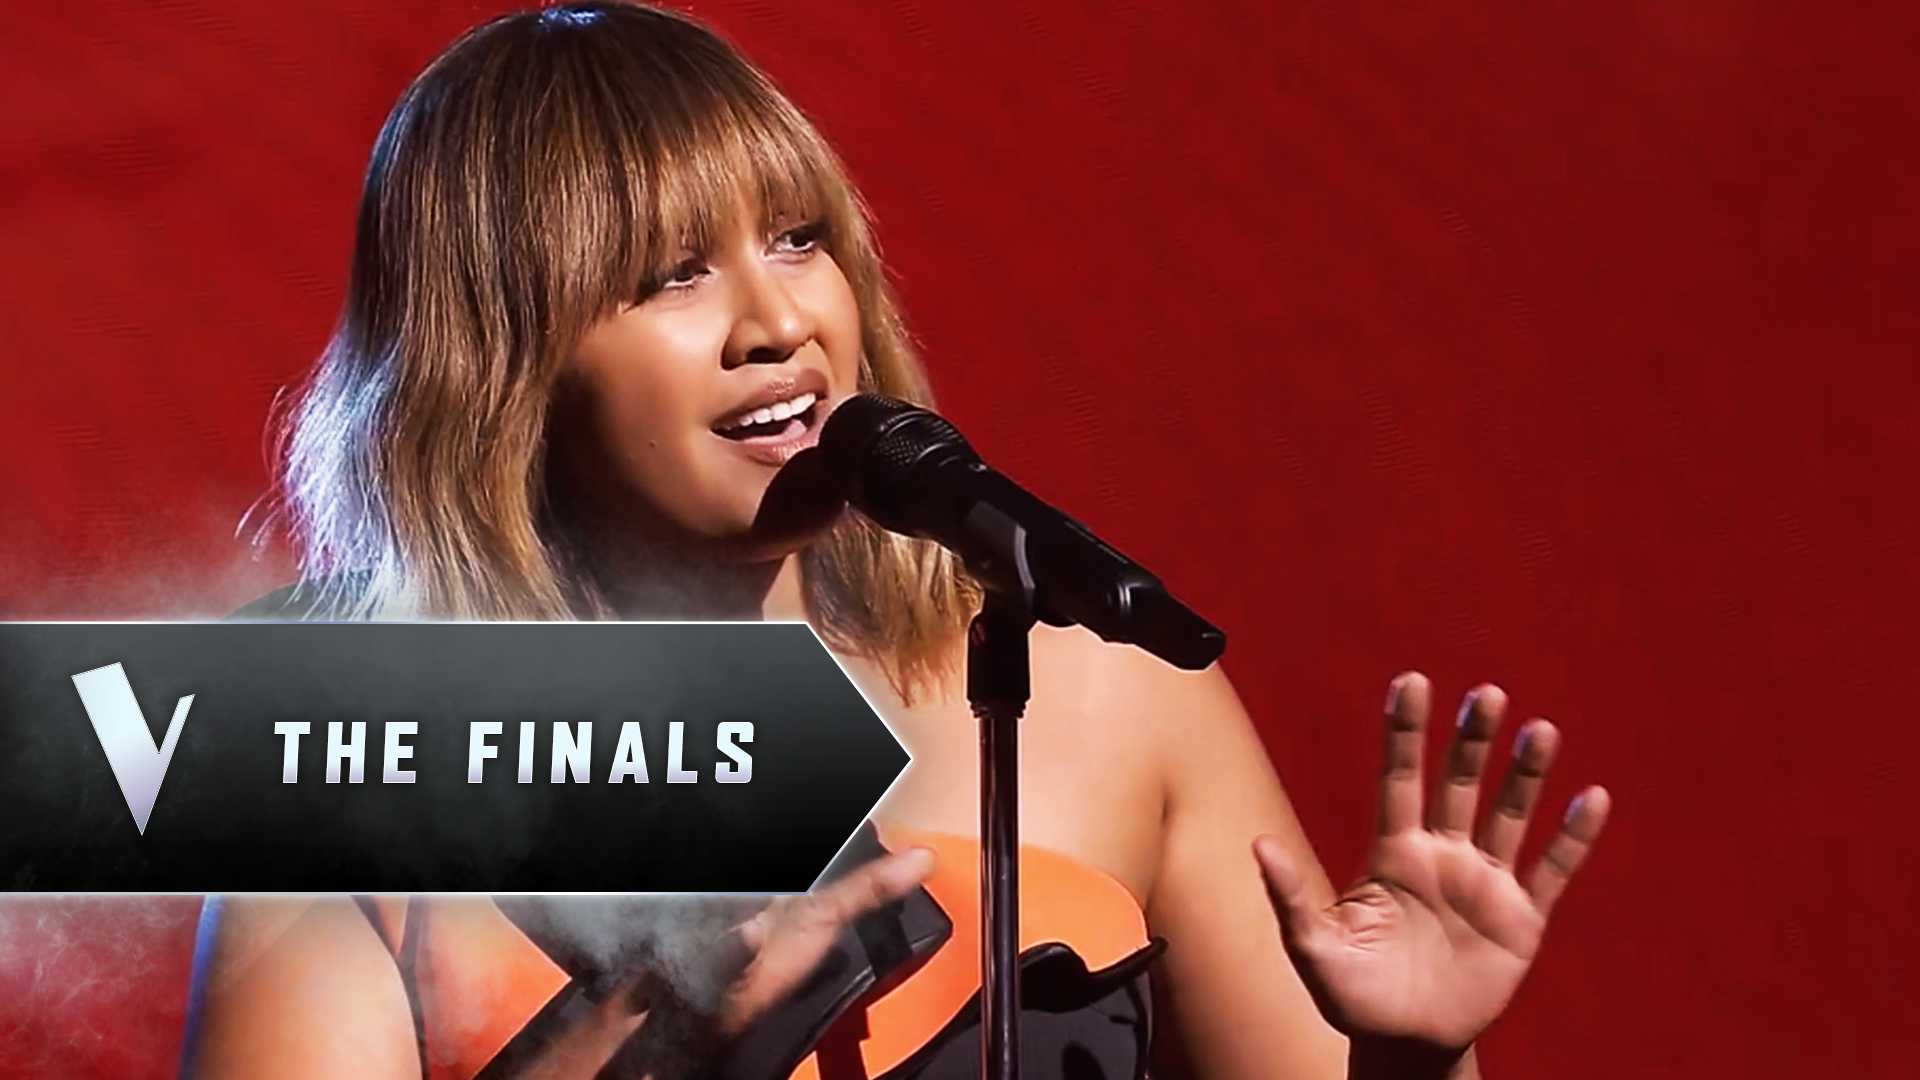 The Finals: Jessica Mauboy 'Little Things'